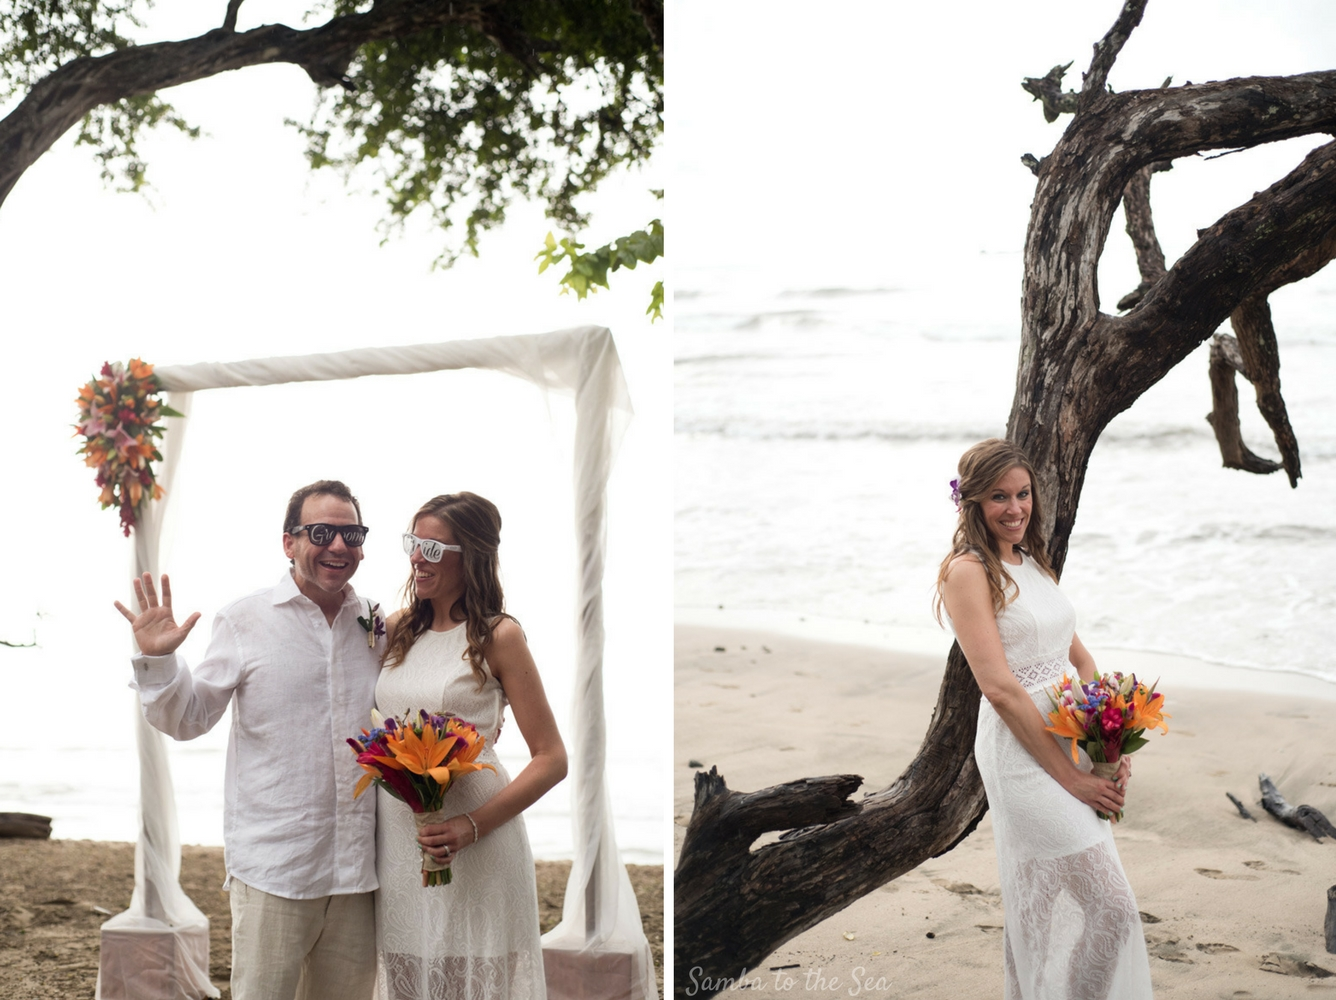 Devan and Jim eloping on the beach in Tamarindo, Costa Rica. Photographed by Kristen M. Brown, Samba to the Sea Photography.